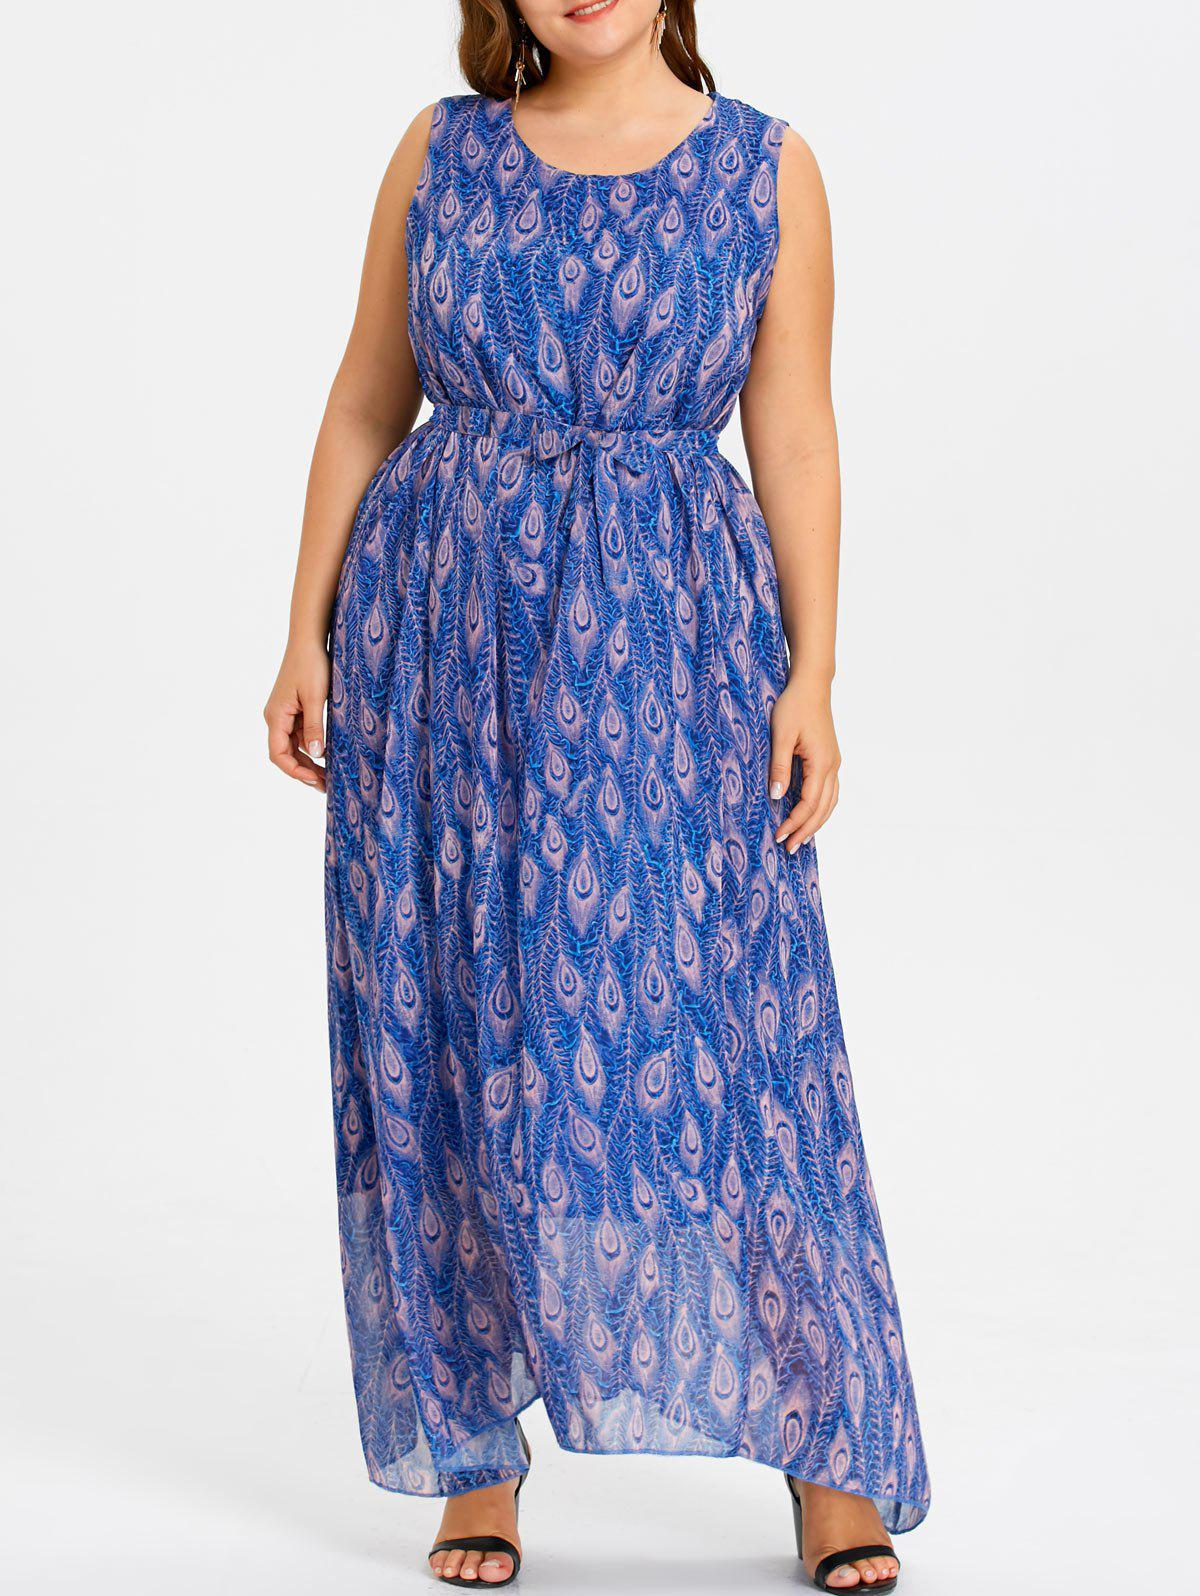 Peacock Plus Size Maxi Beach Dress - LARKSPUR 4XL